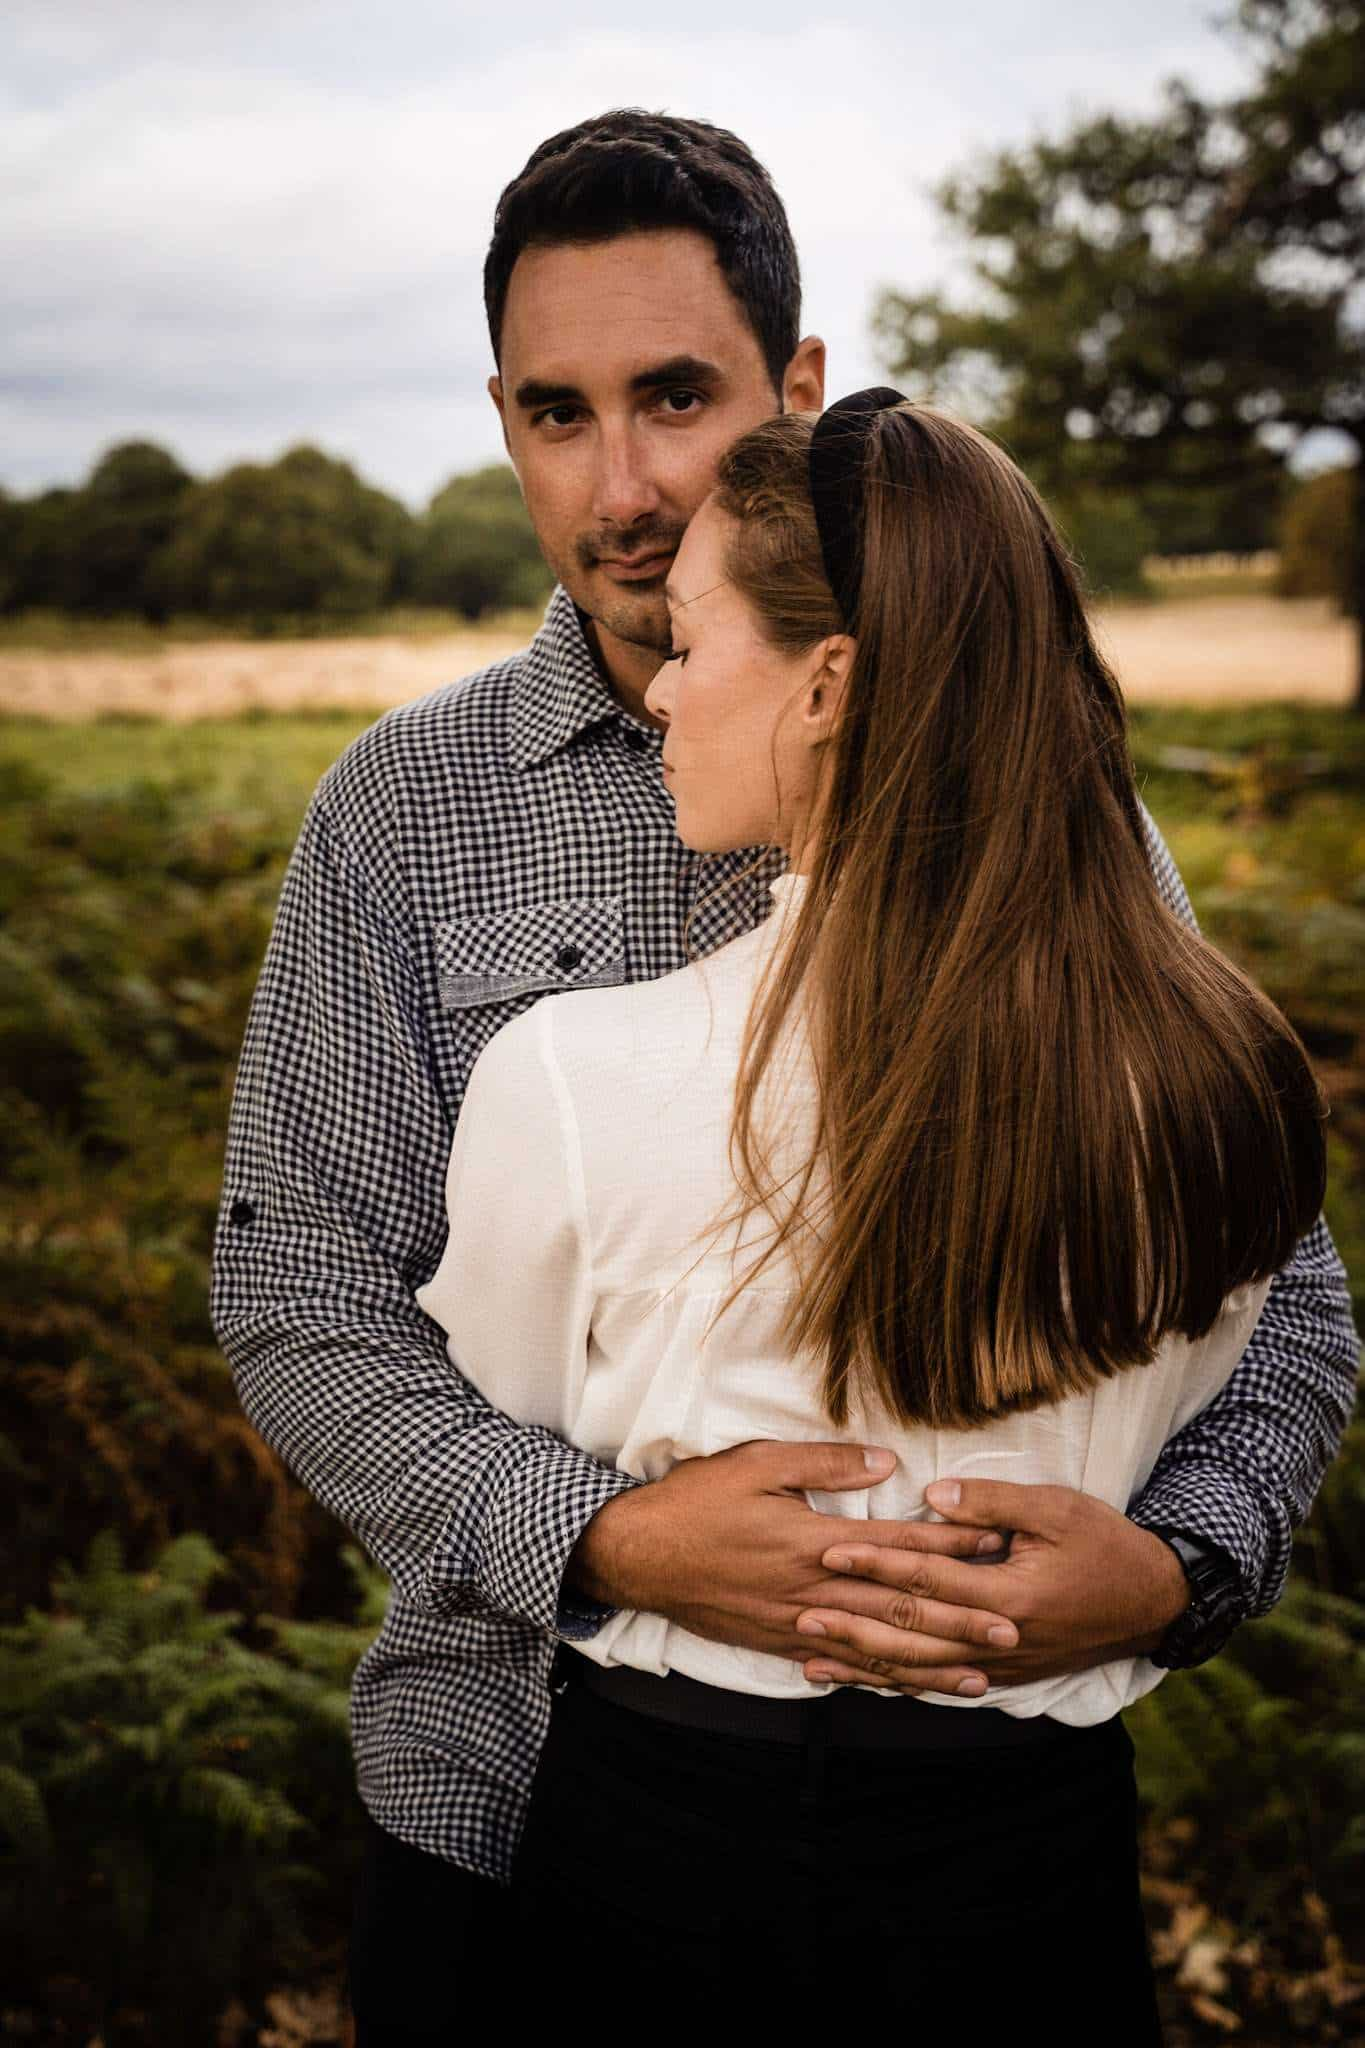 An engaged couple share an embrace in Richmond Park